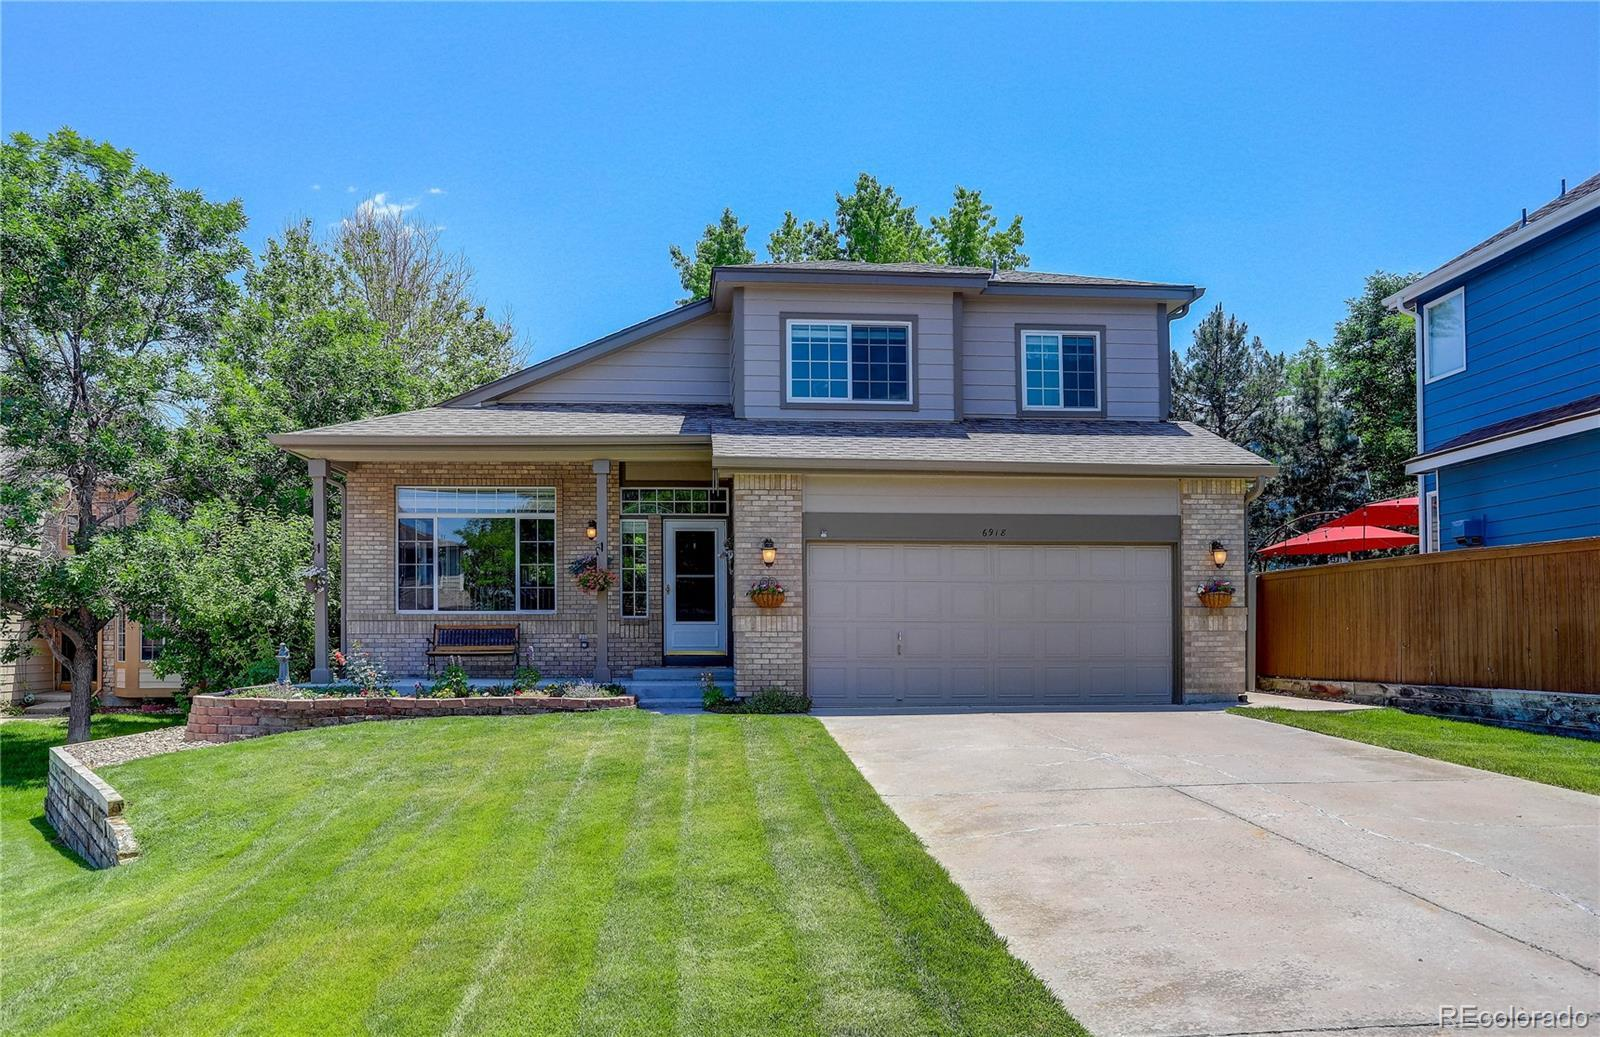 6918 Edgewood Court, Highlands Ranch, CO 80130 - #: 9759772